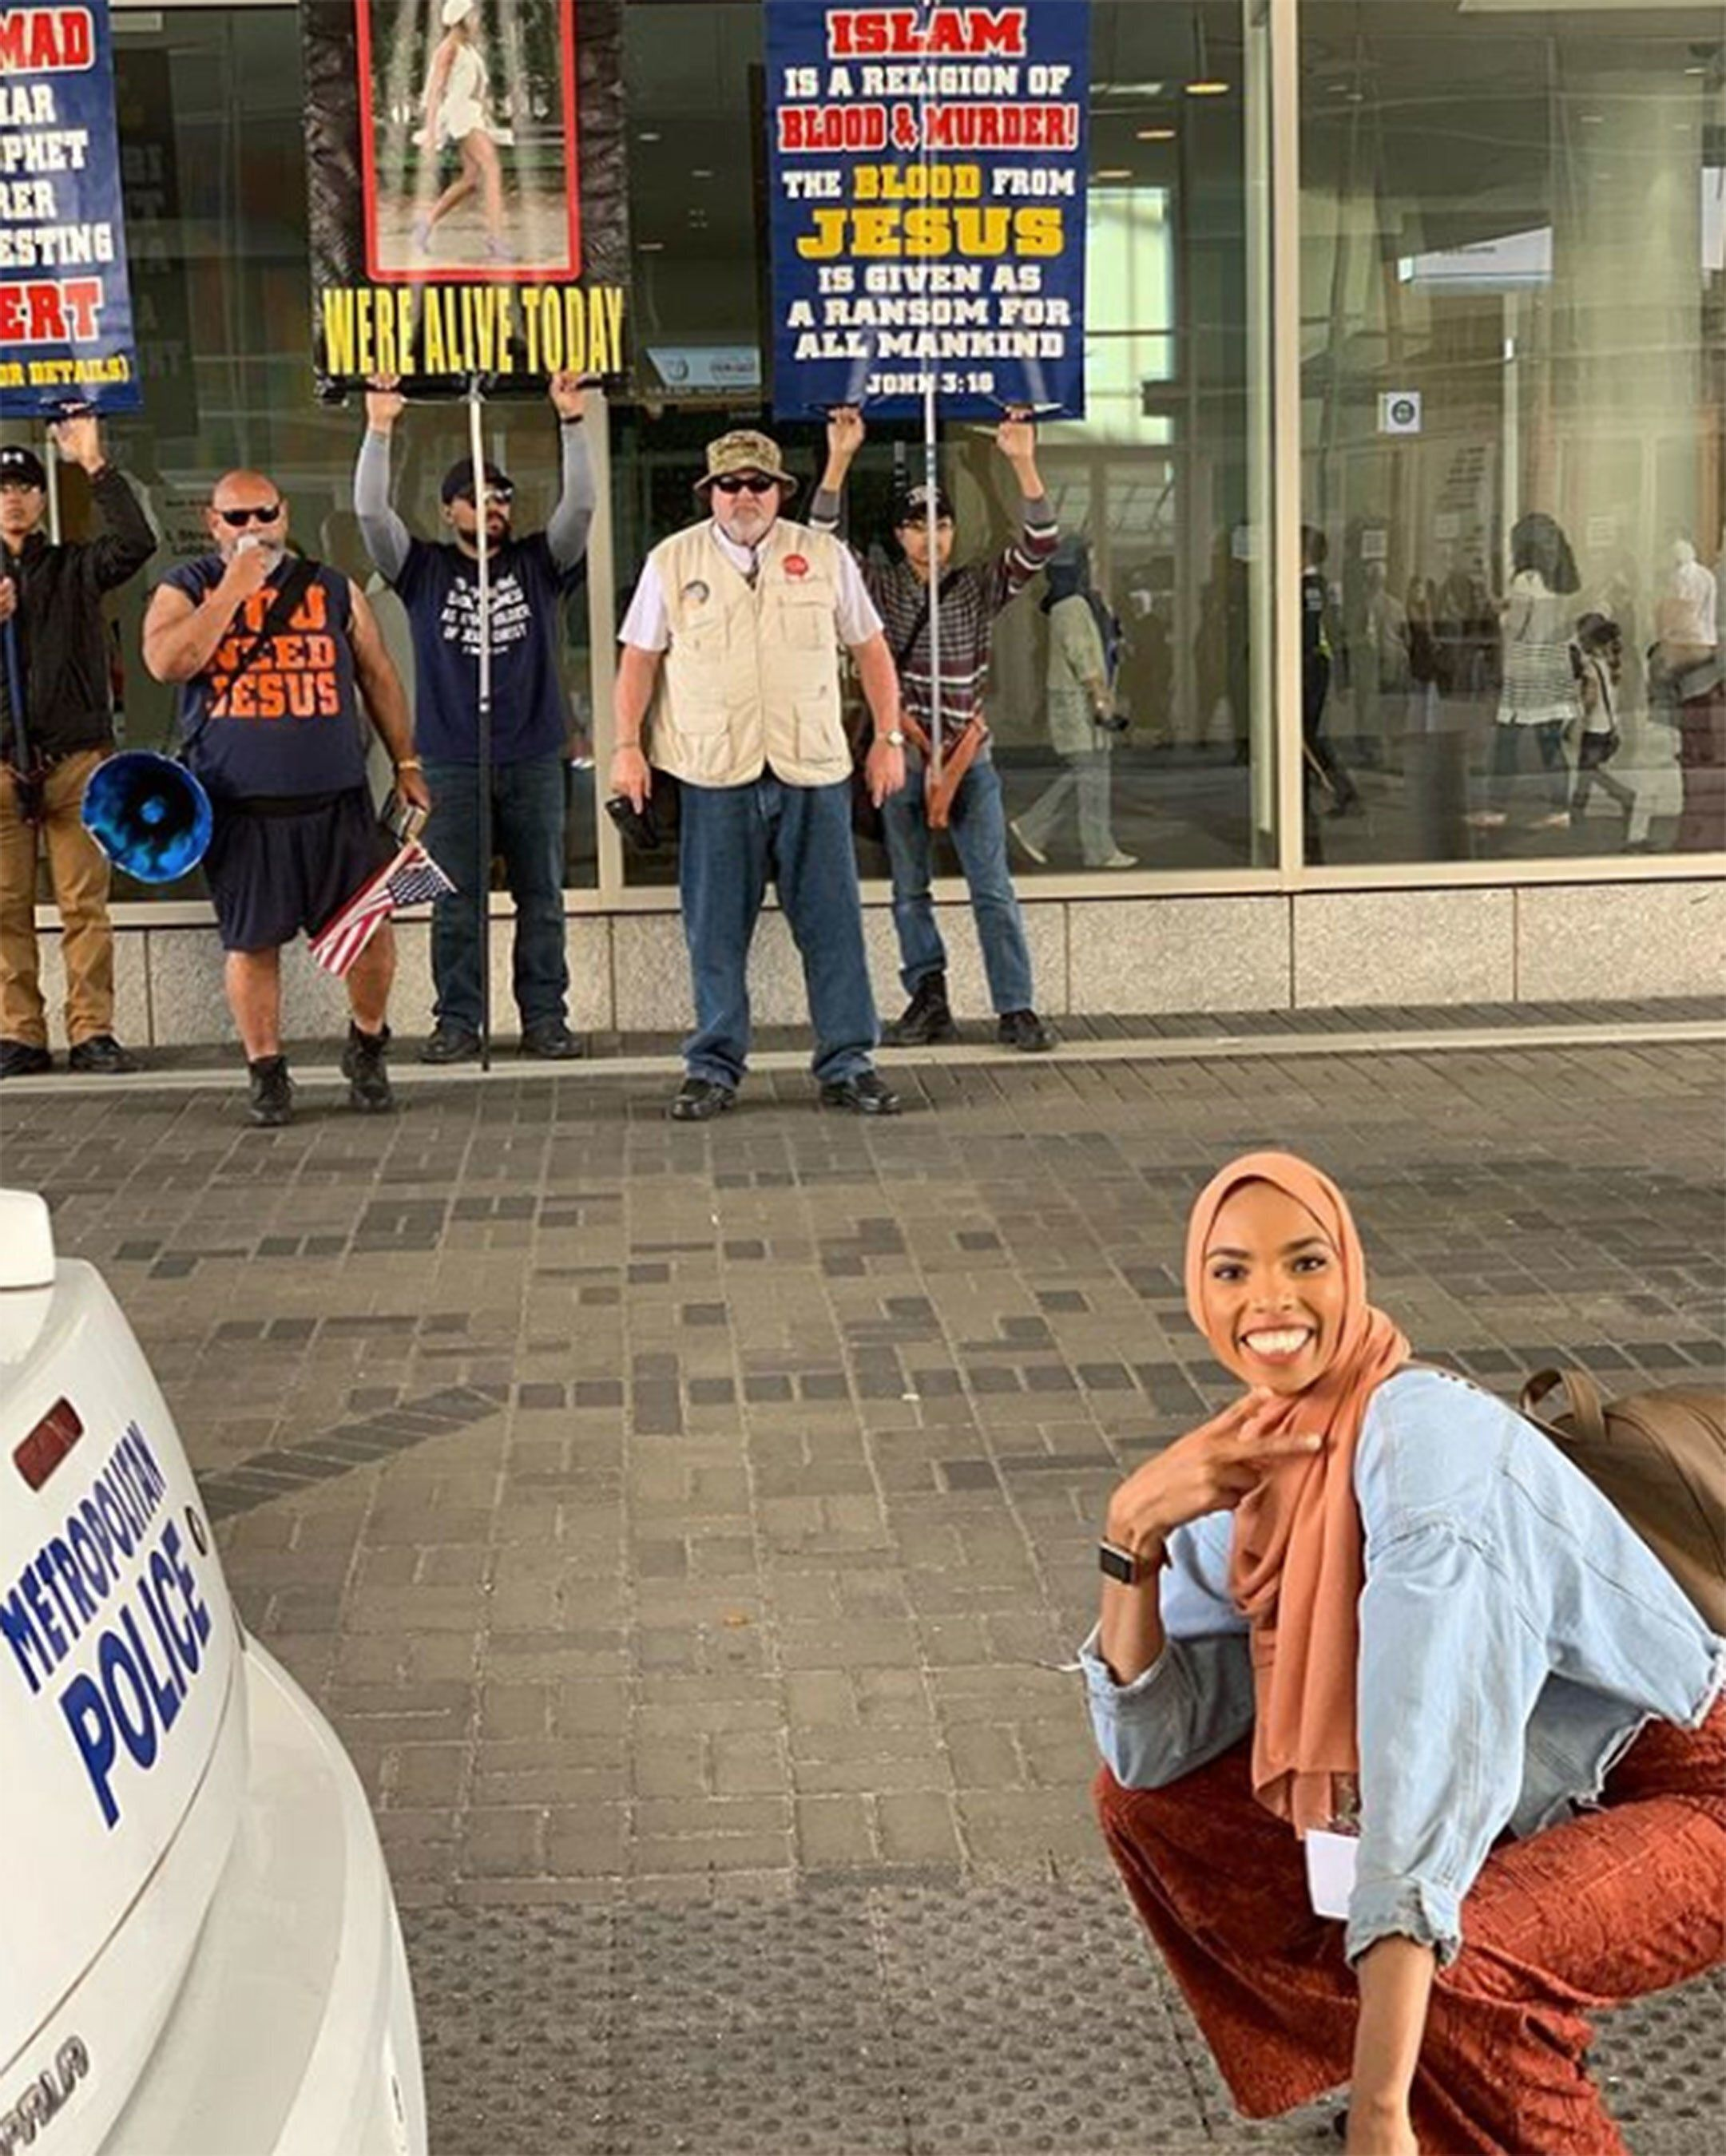 Muslim Woman Responds To Bigotry With A Smile In Photo With Protesters